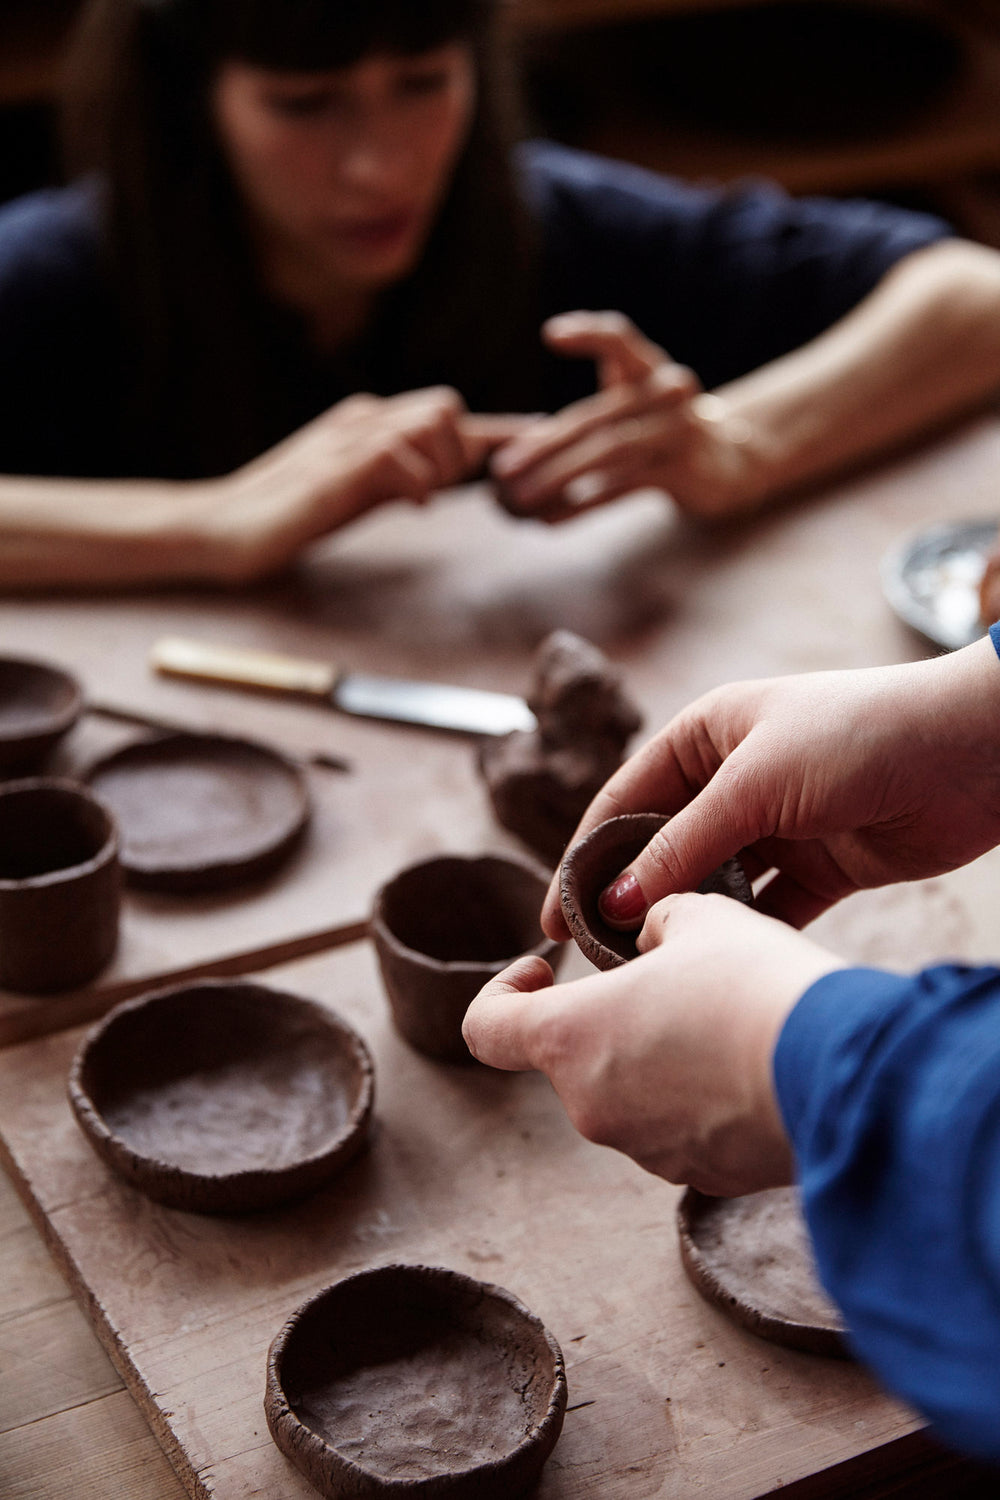 KANA x HATO Japanese Tableware Explorer: 2 week course, 14th & 21st November